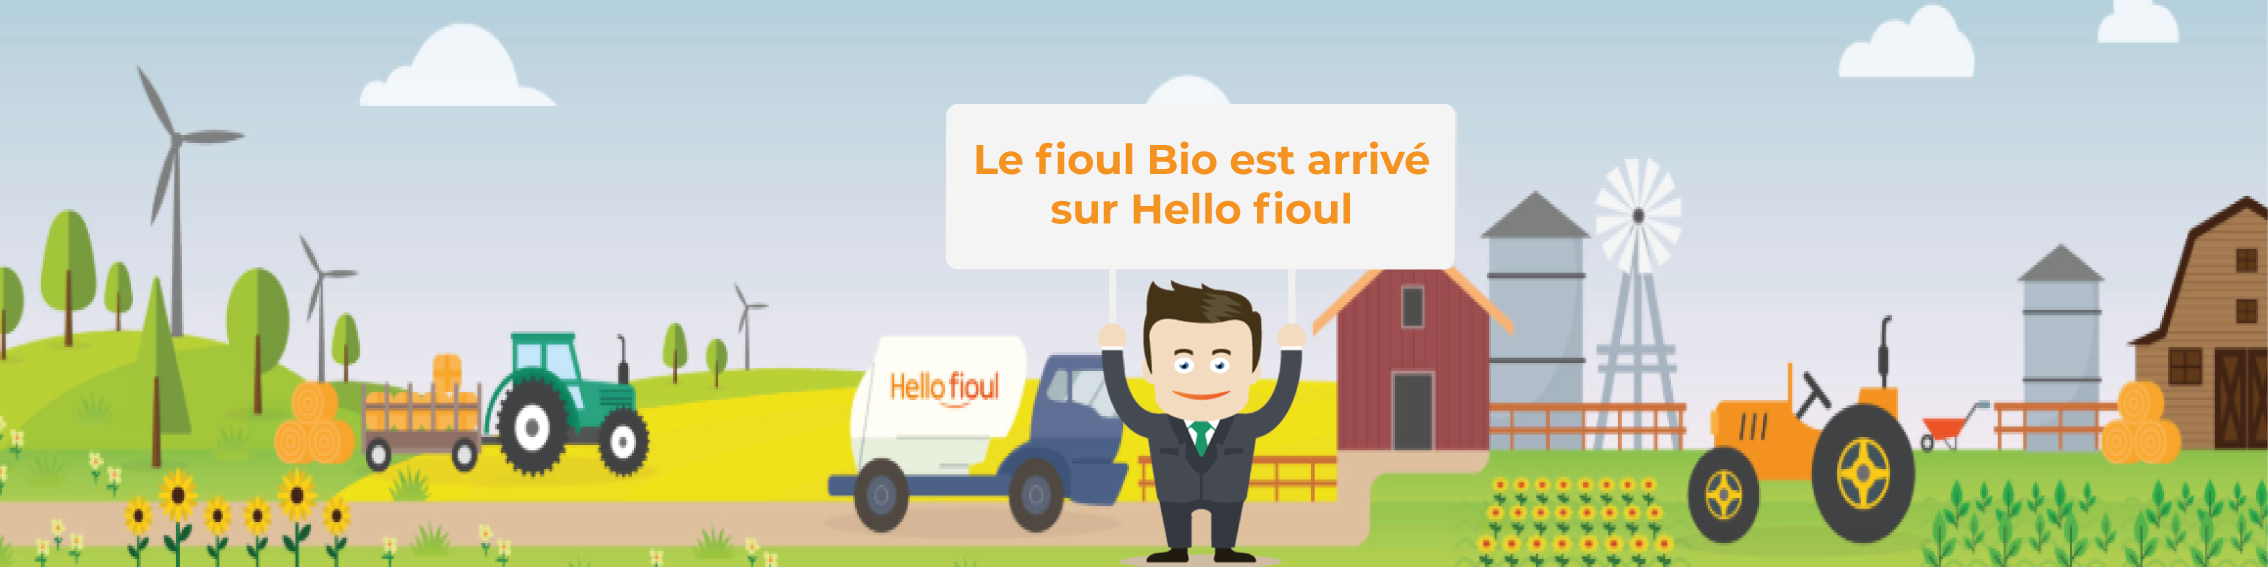 Du biofioul en vente disponible en France